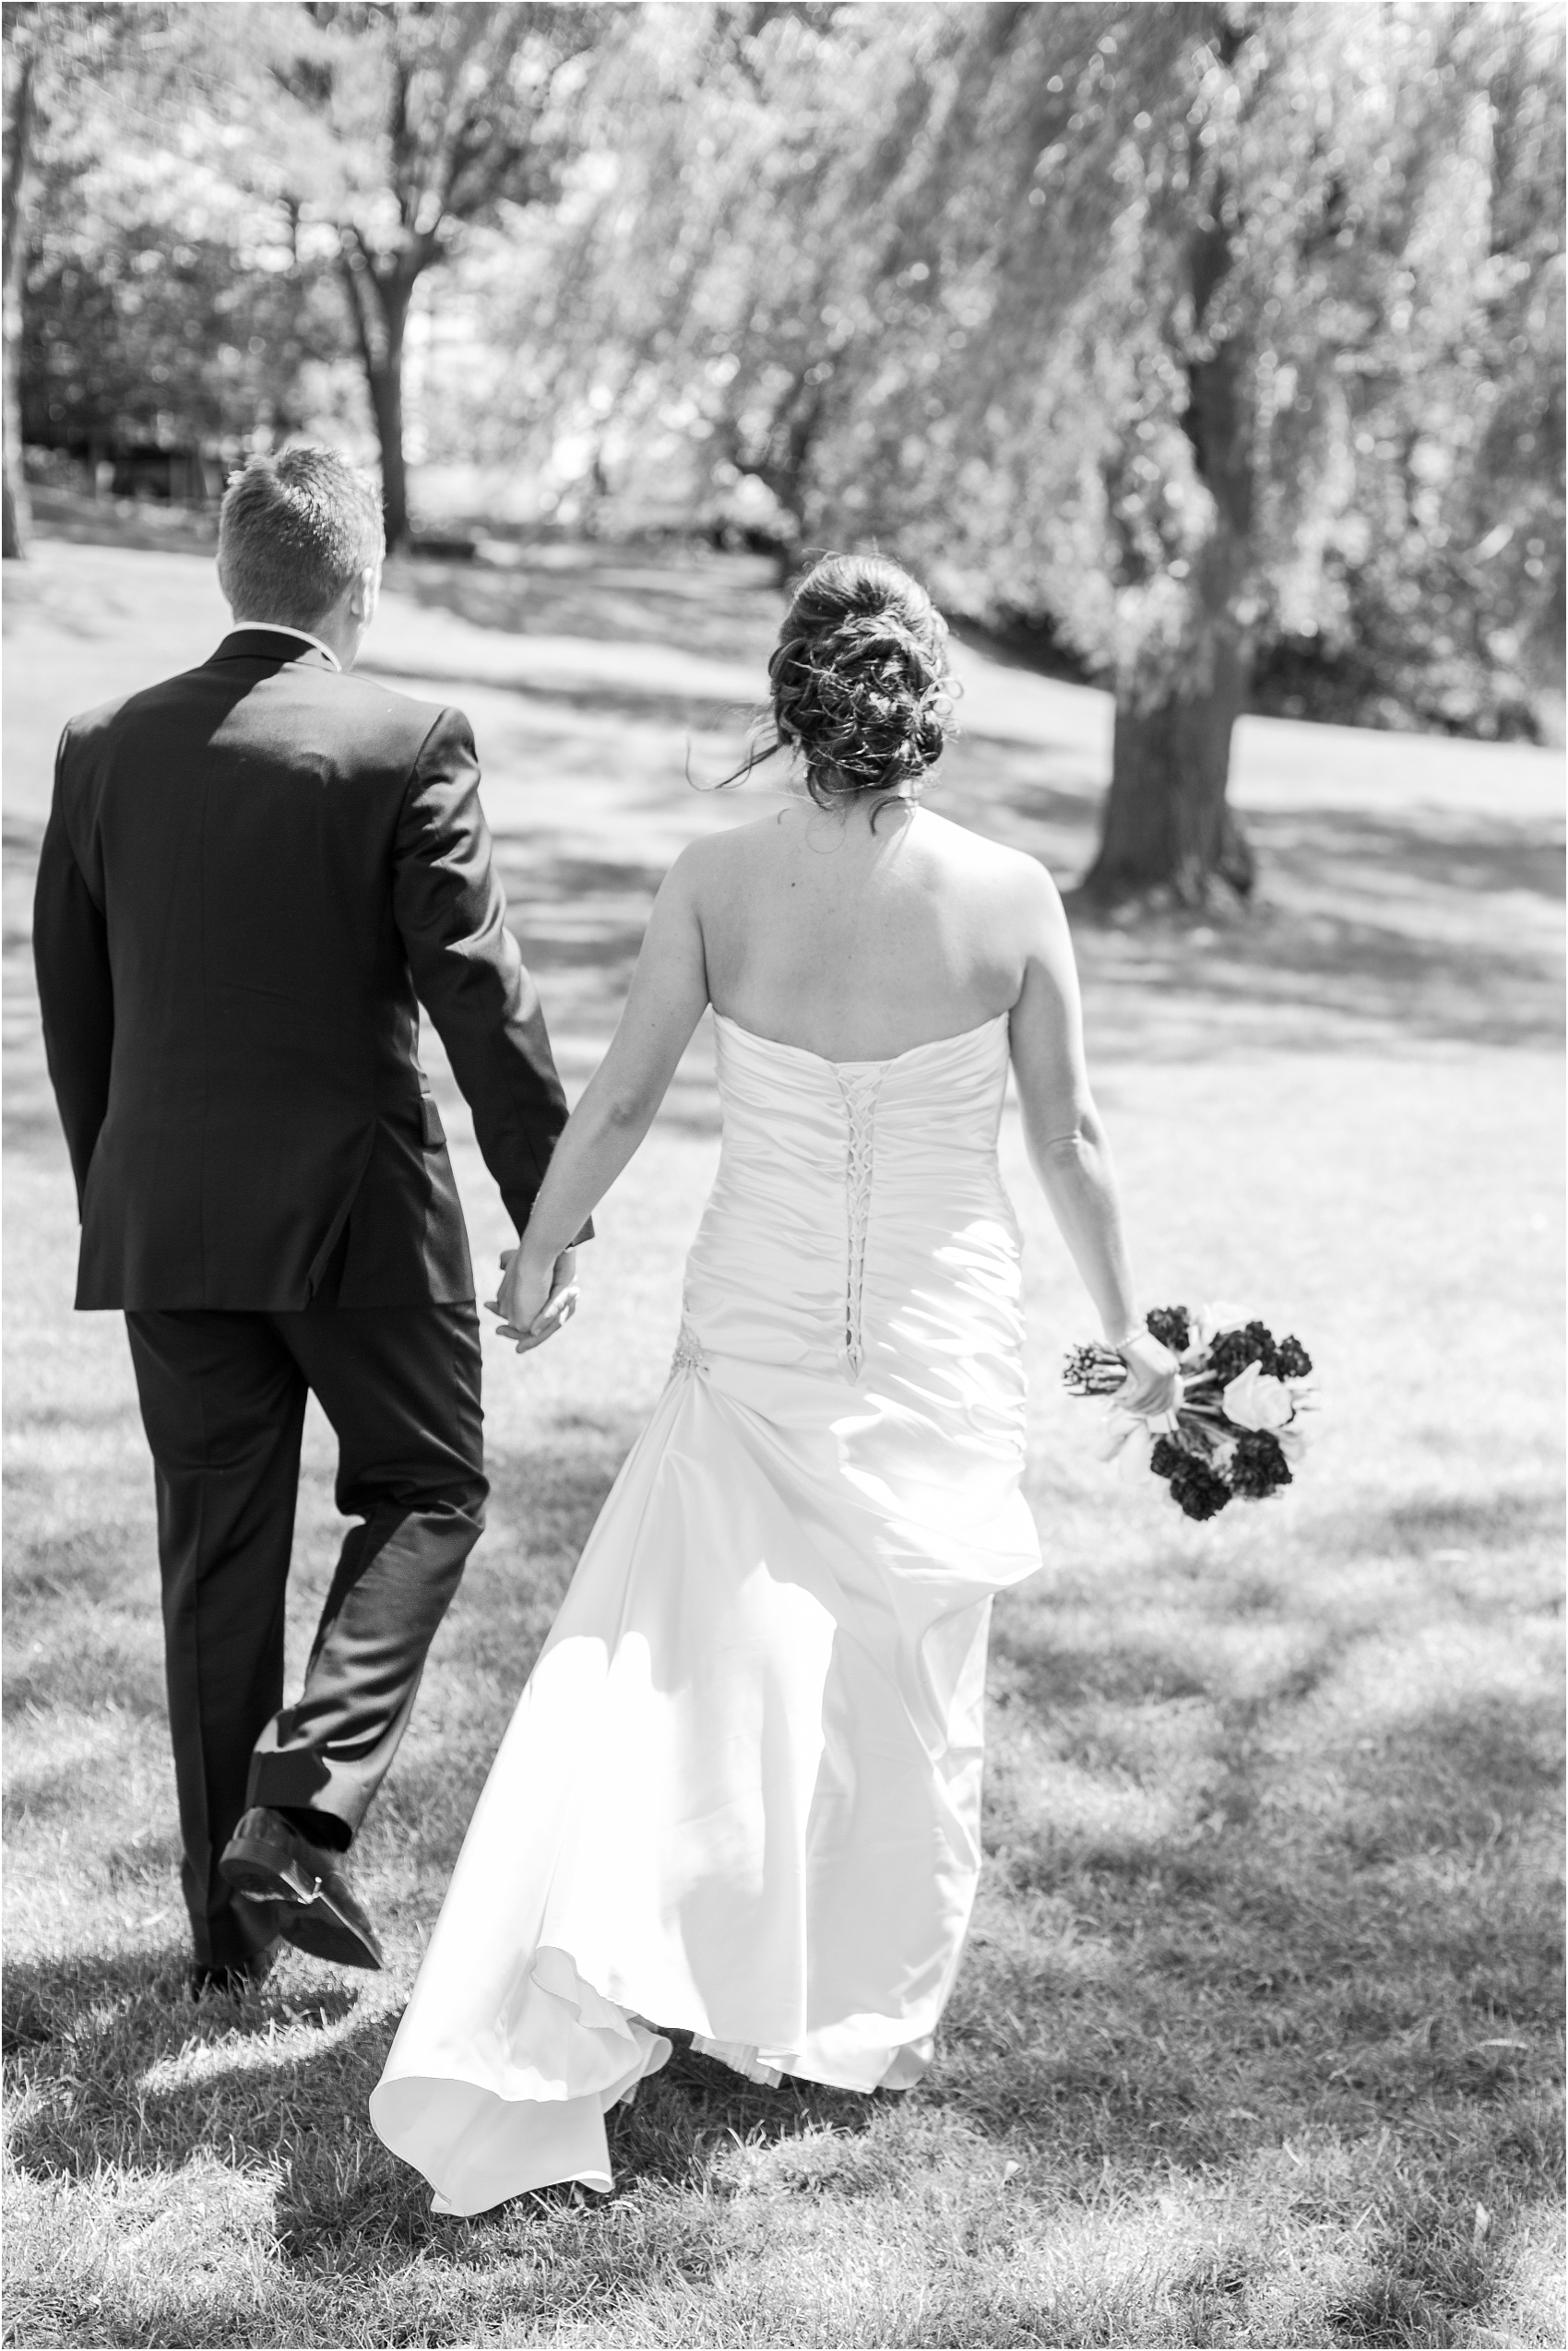 classic-wedding-photos-at-great-oaks-country-club-in-rochester-hills-mi-by-courtney-carolyn-photography_0050.jpg